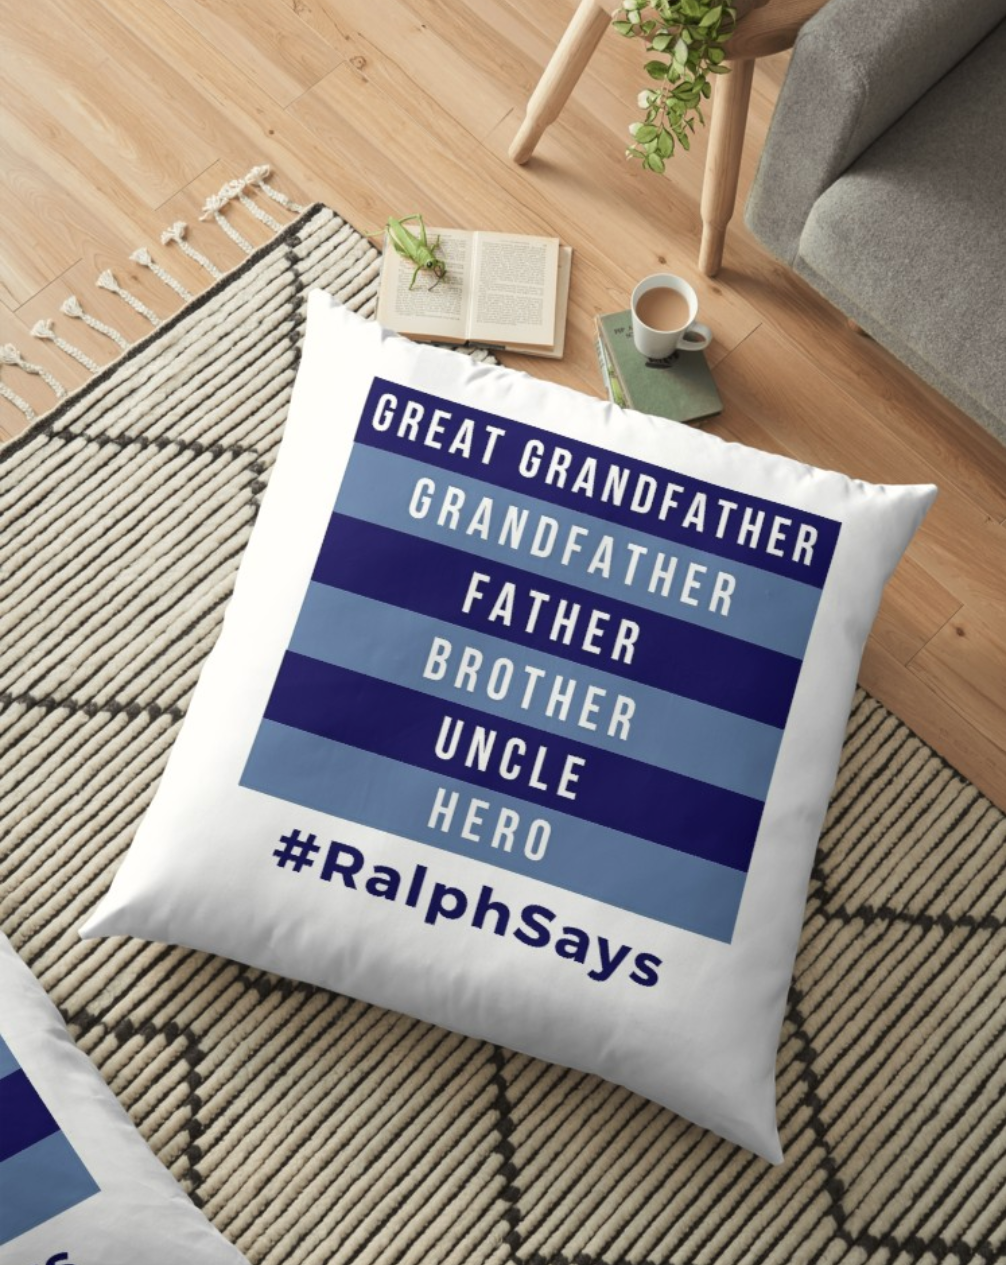 #RalphSays - a cushion from the Ralph Says Things shop